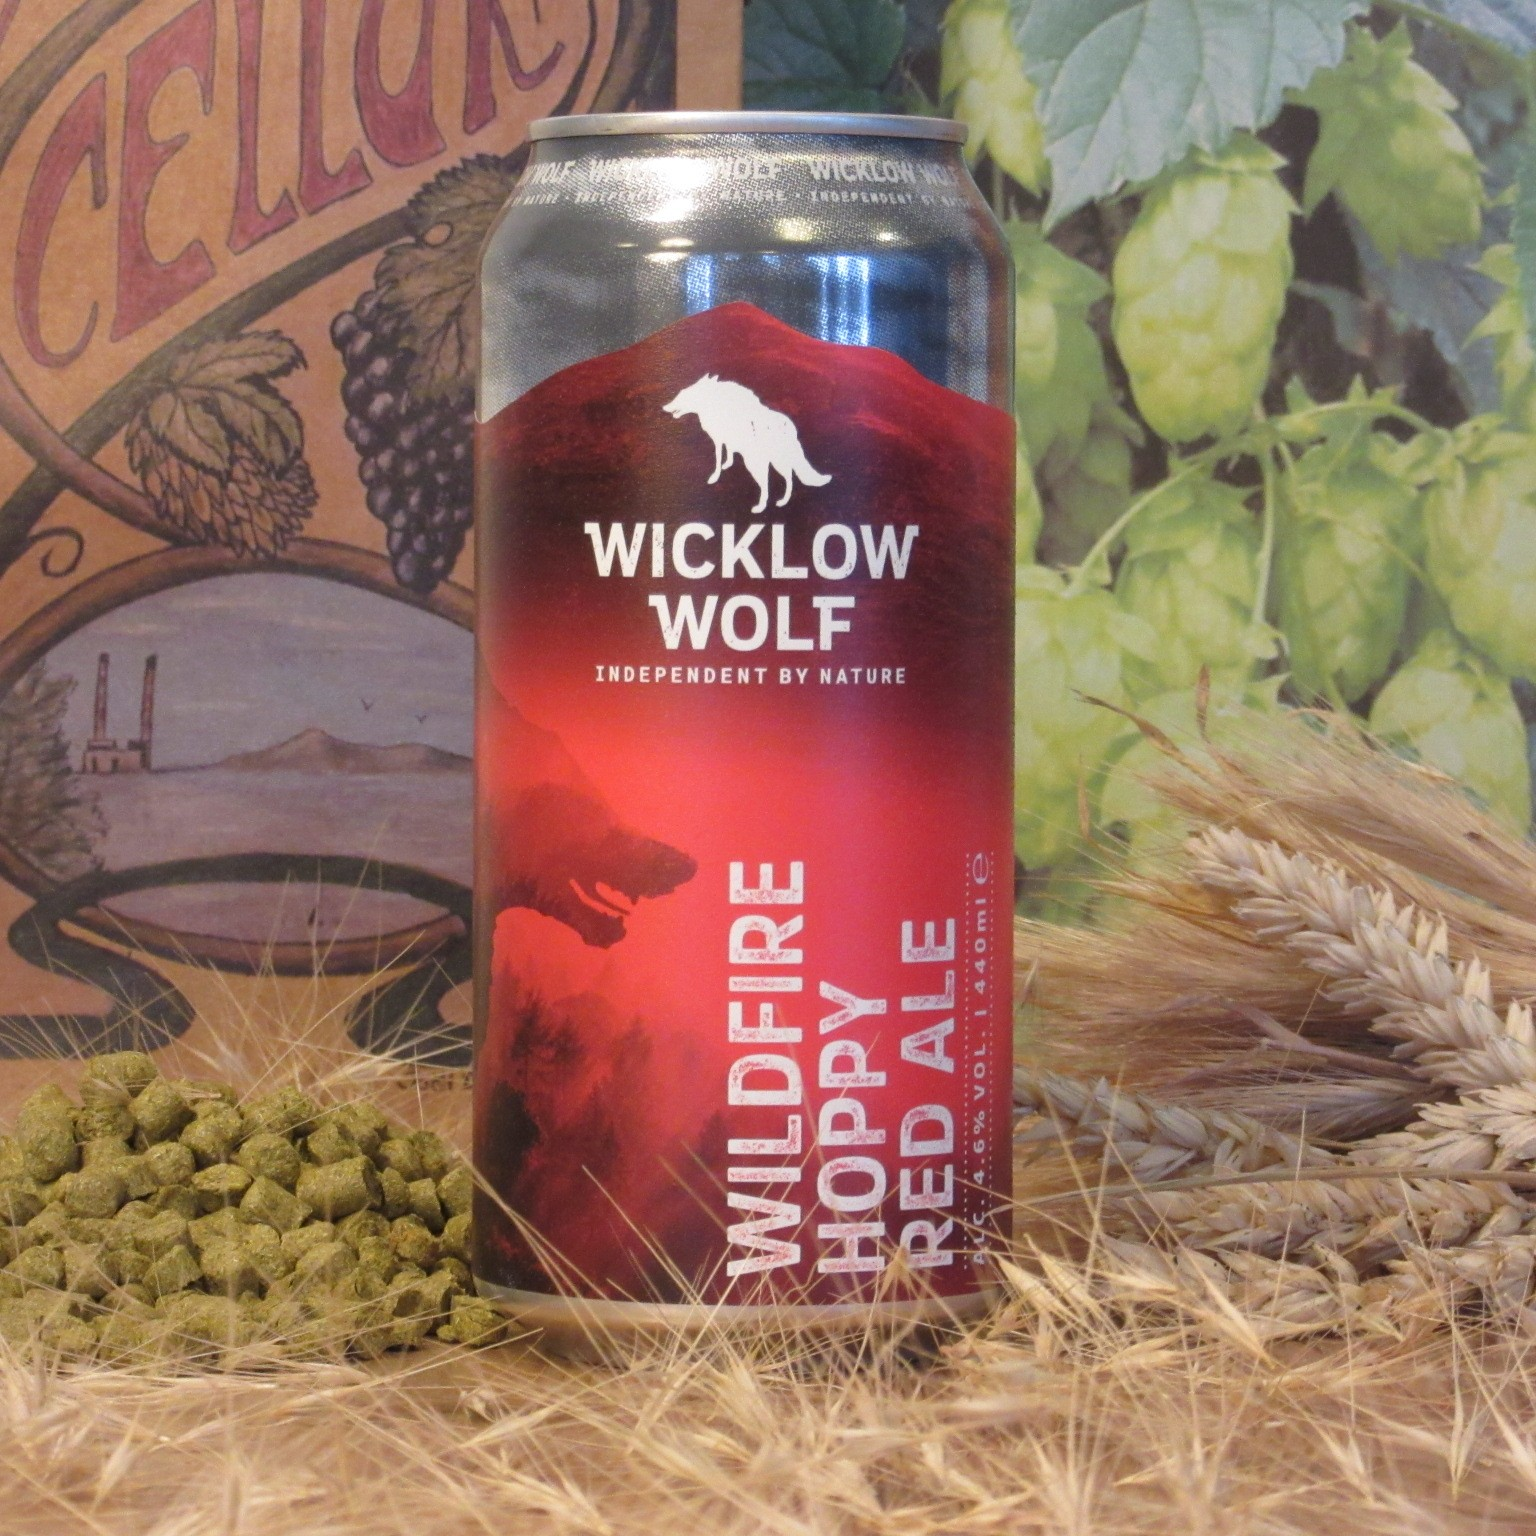 Wicklow Wolf Wildfire Hoppy Red Ale